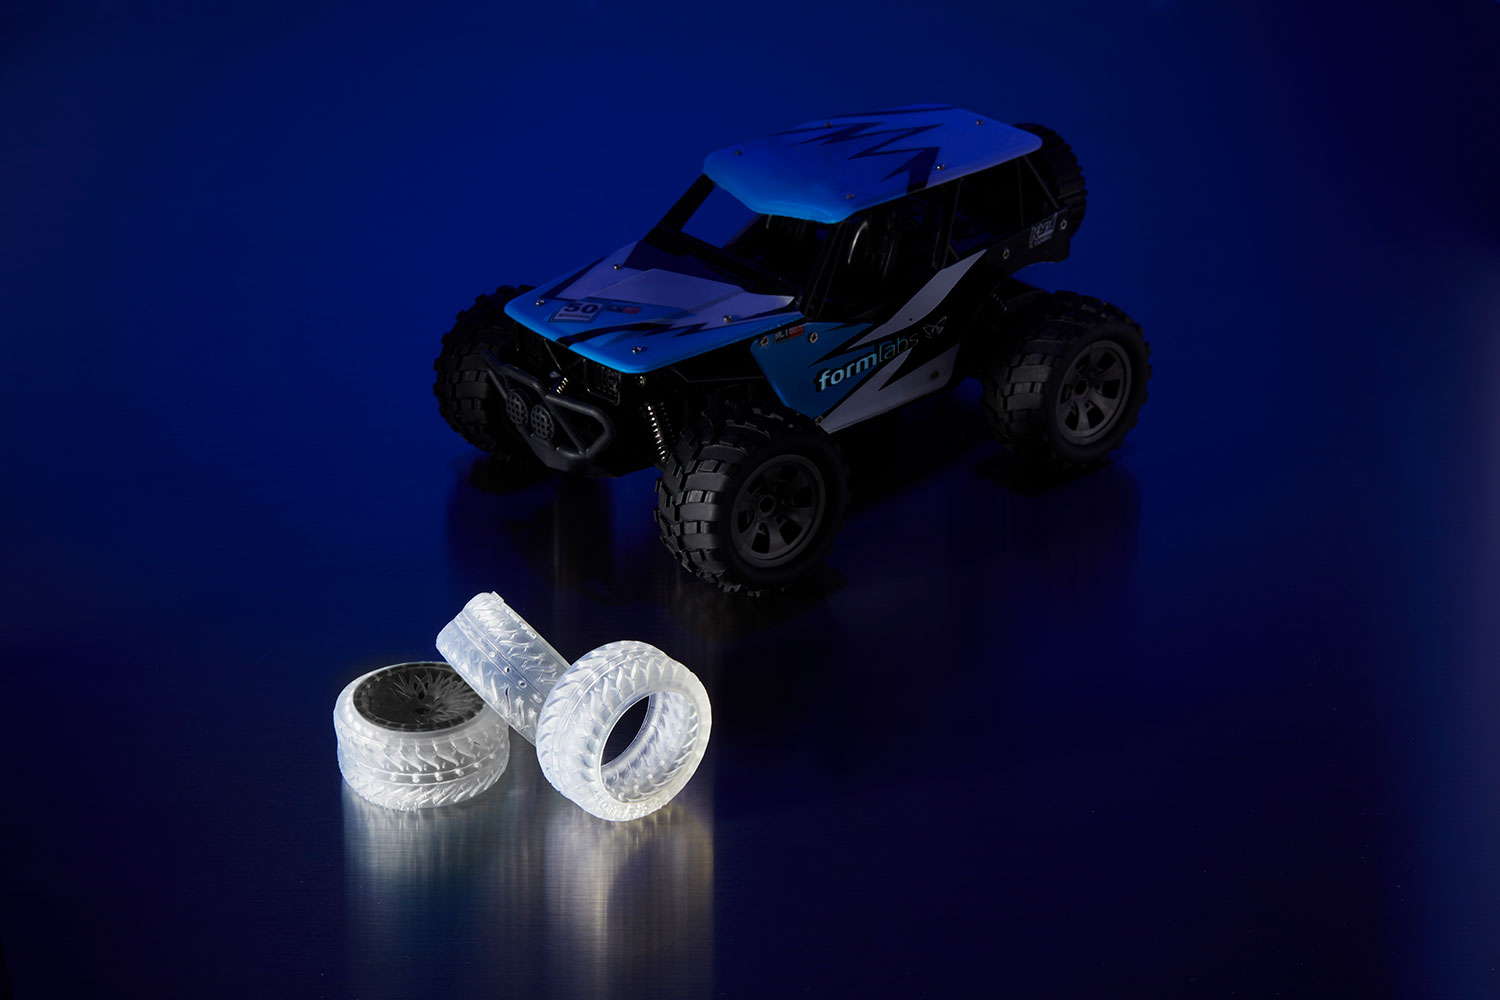 A toy RC car and tires 3D printed in Elastic Resin